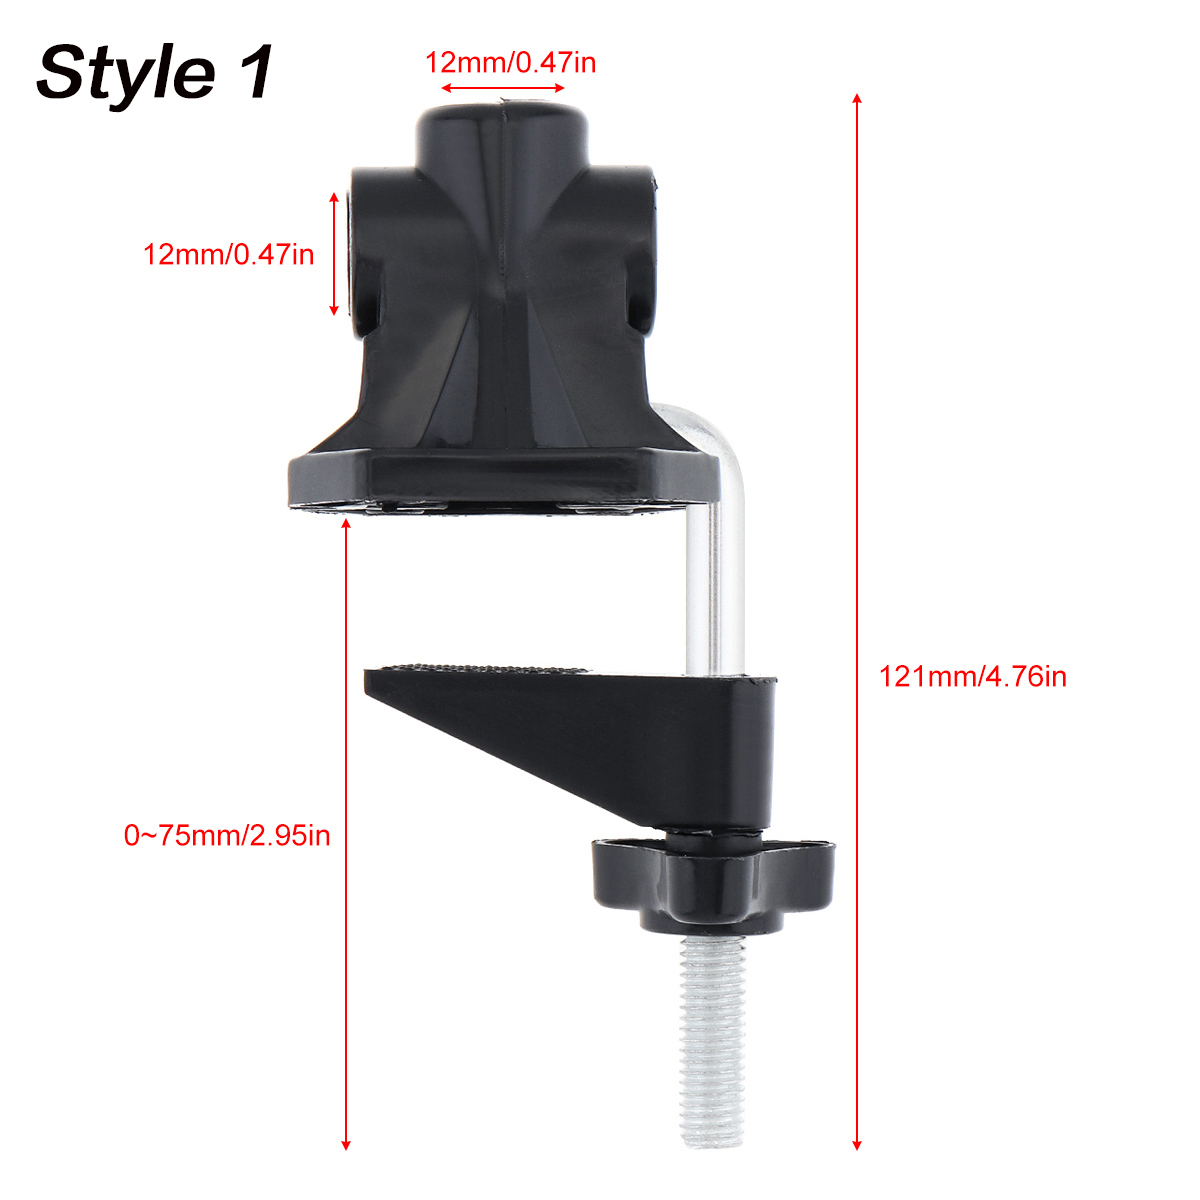 Table Lamp Holder Clamp Fixed Clip 1//2Inches Base Hose DIY Swing Arm Lighting Accessory Metal Clamp